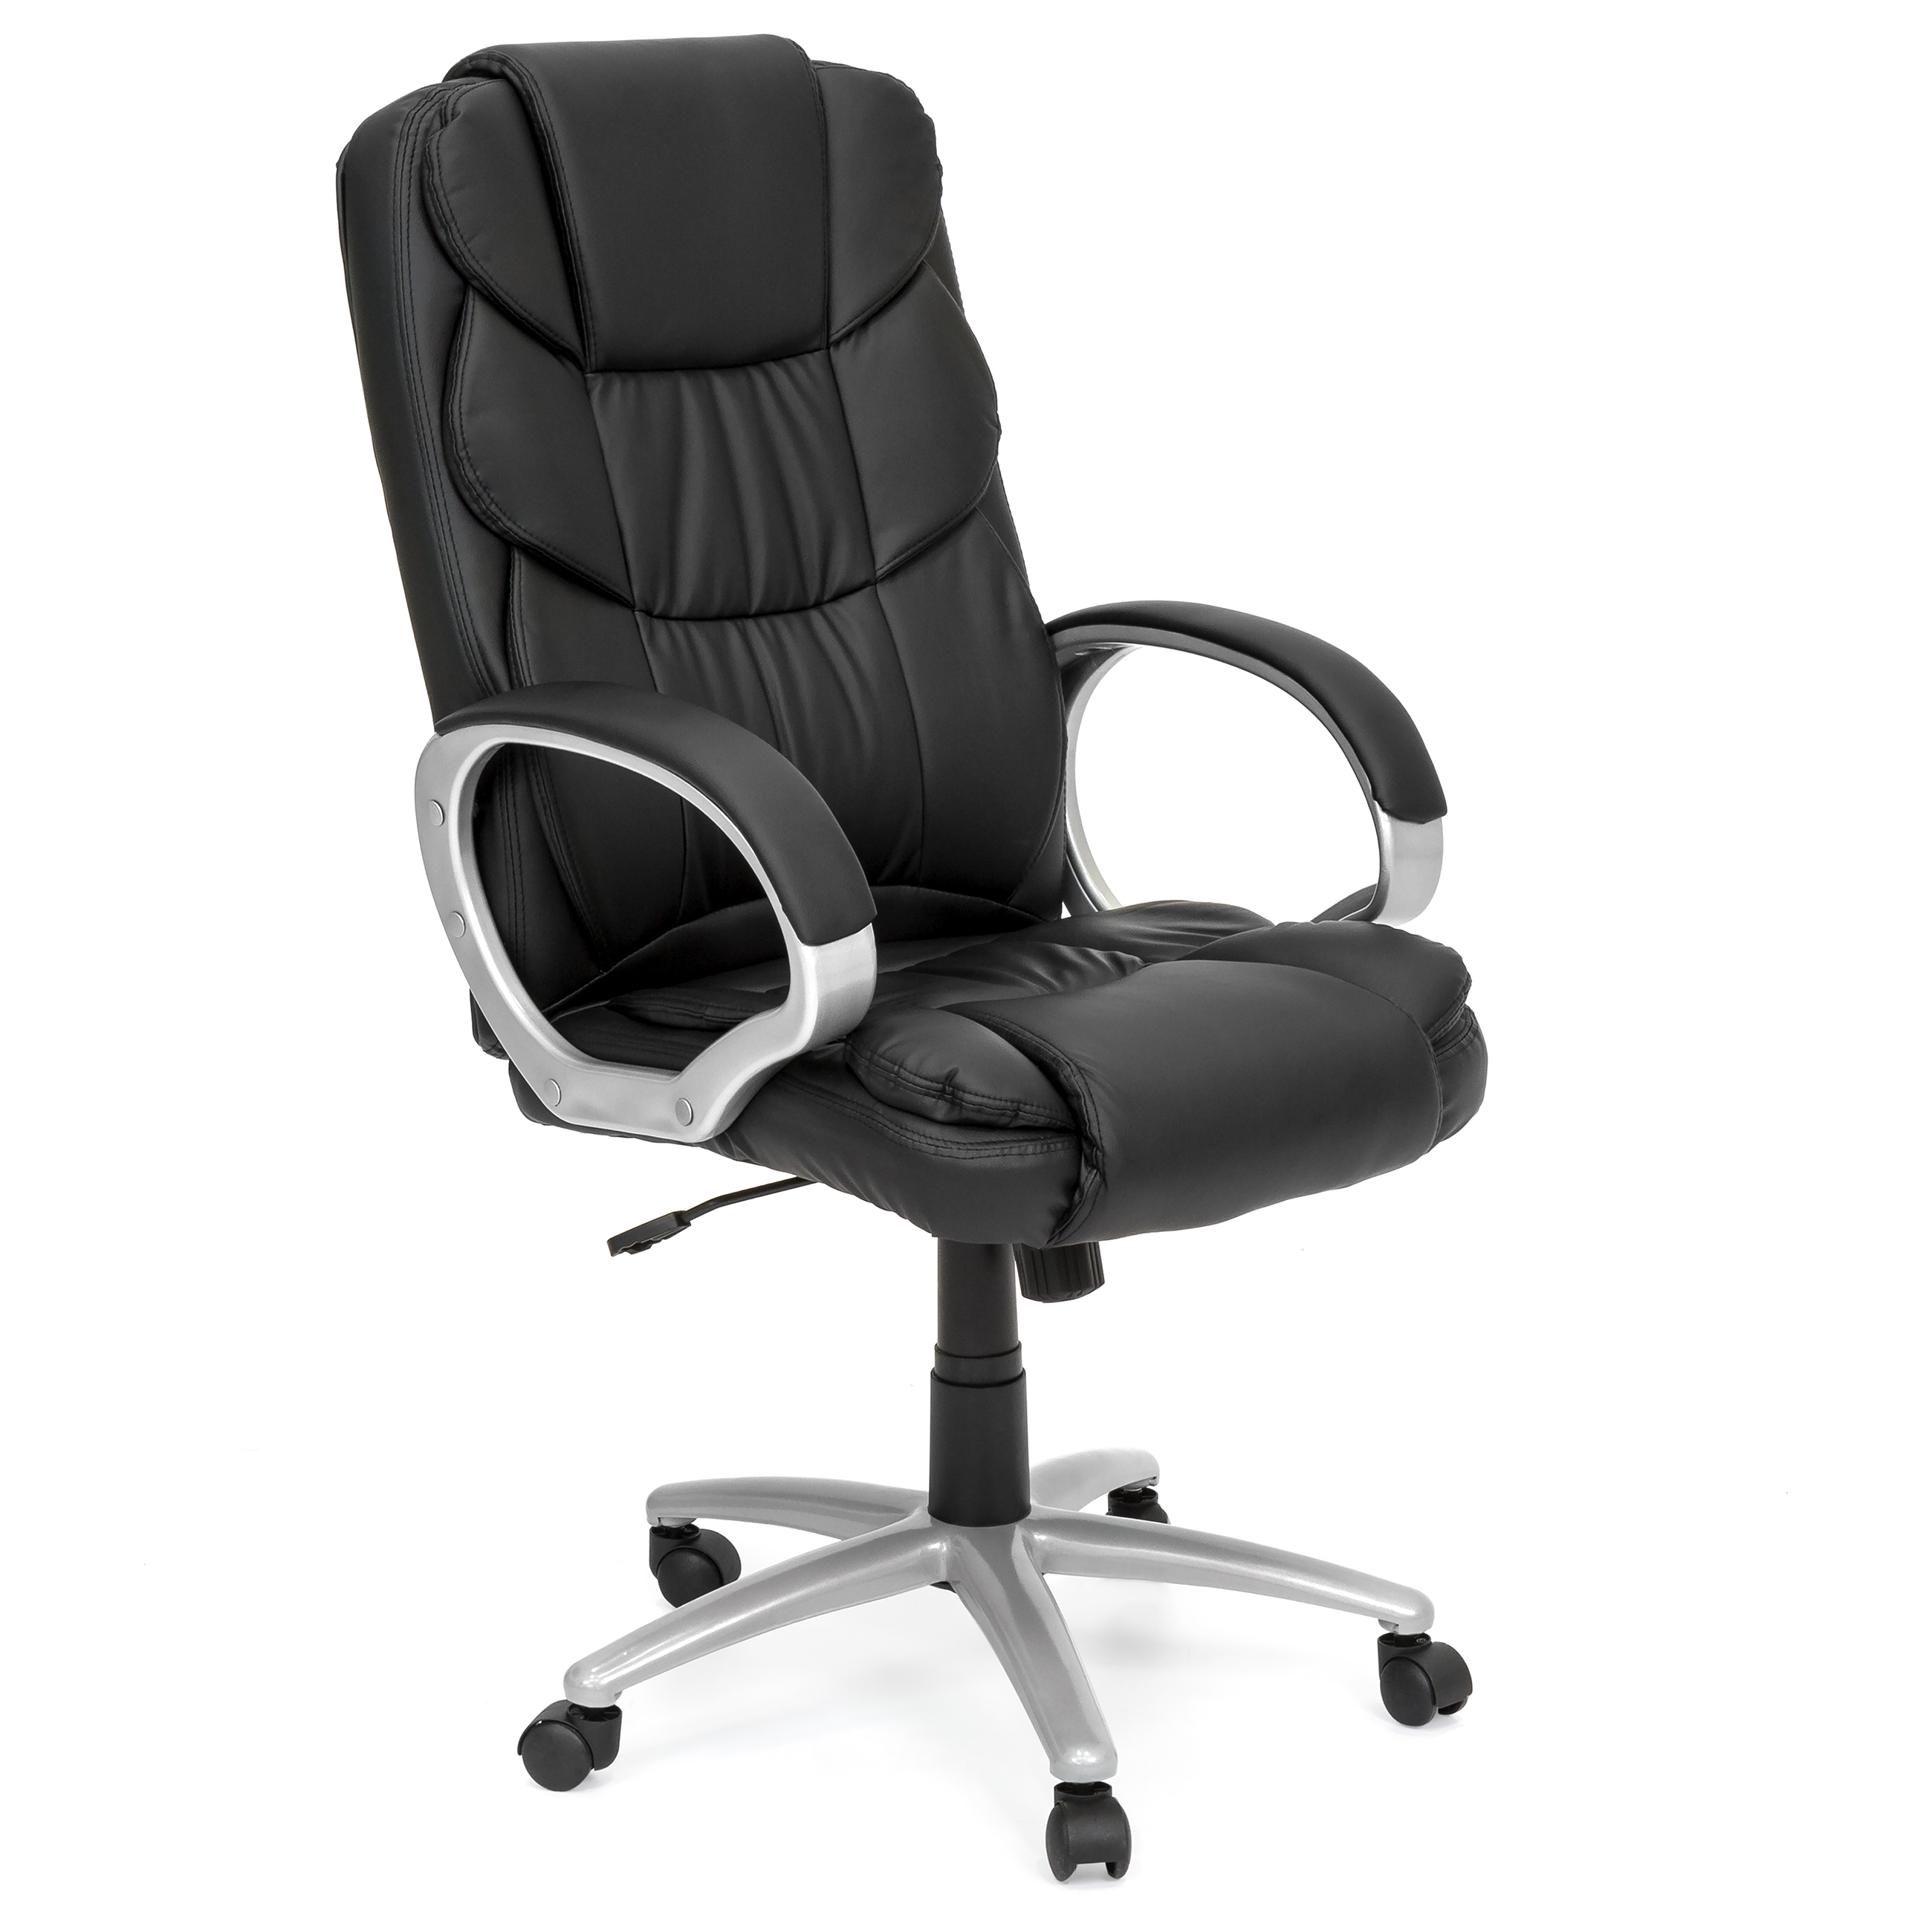 Office Chairs Walmart >> Best Choice Products Ergonomic Pu Leather High Back Office Chair